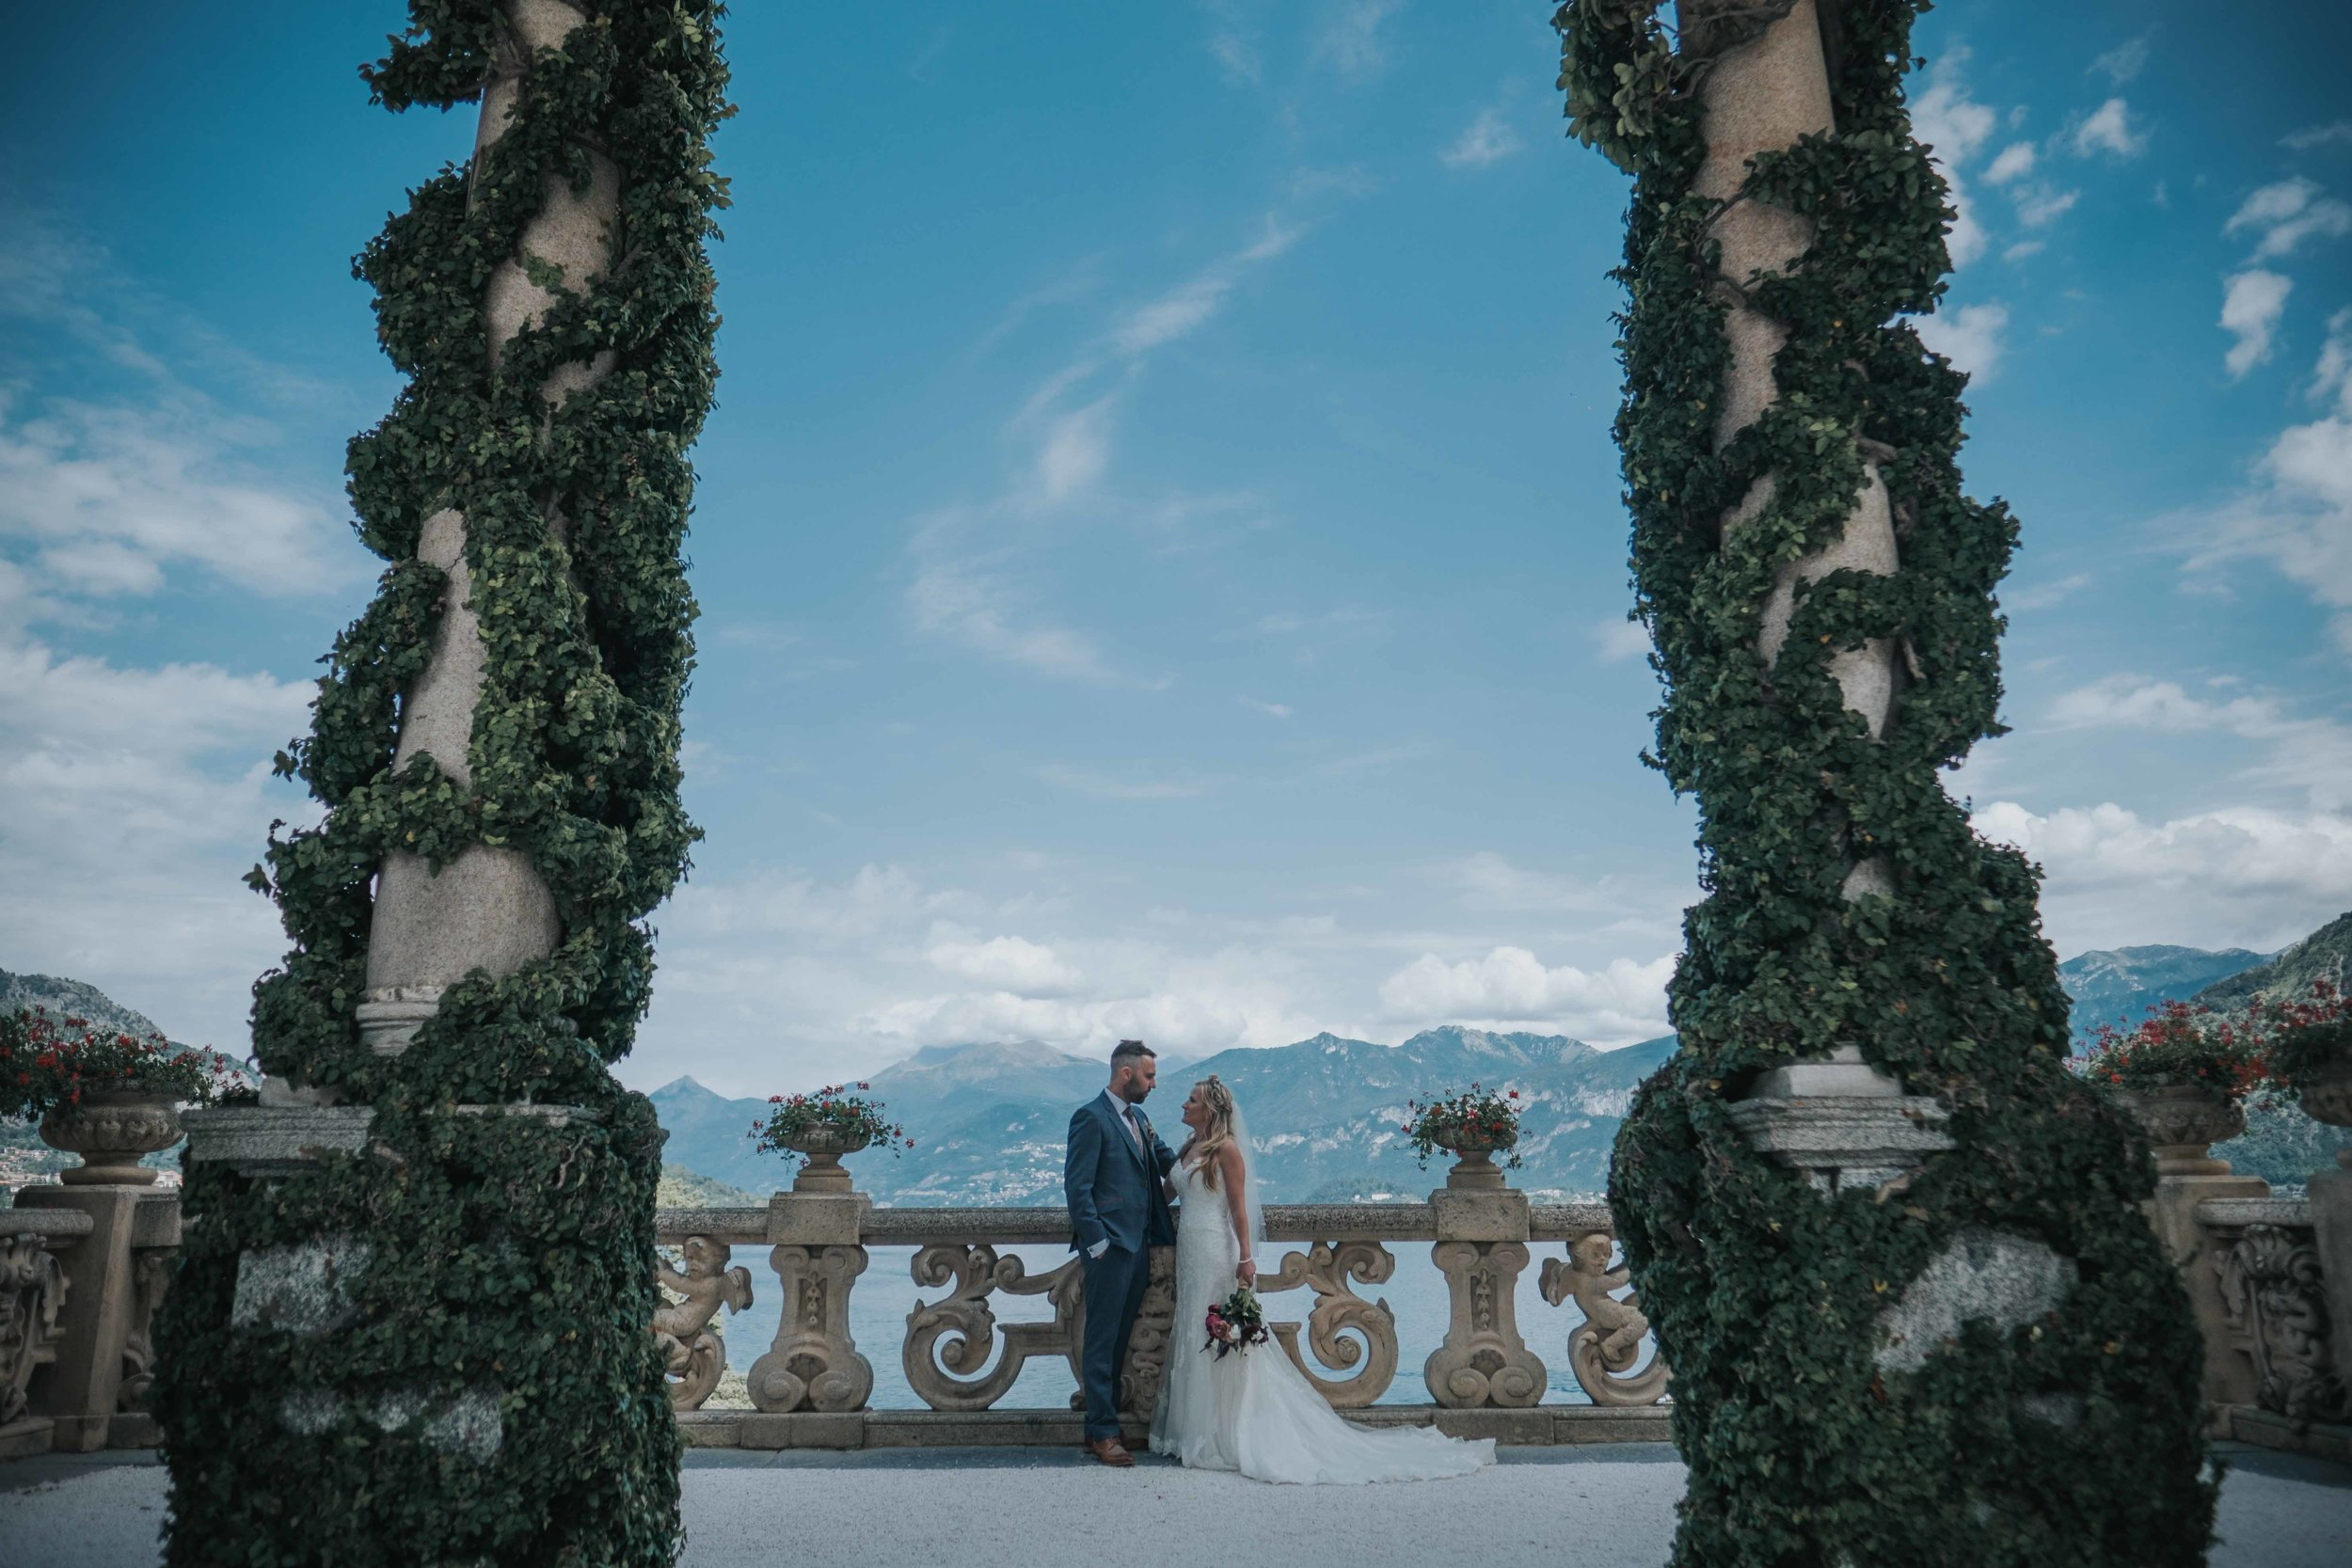 Laco Como Italy destination wedding photographer cheshire north west england documentry photography (65 of 117).jpg